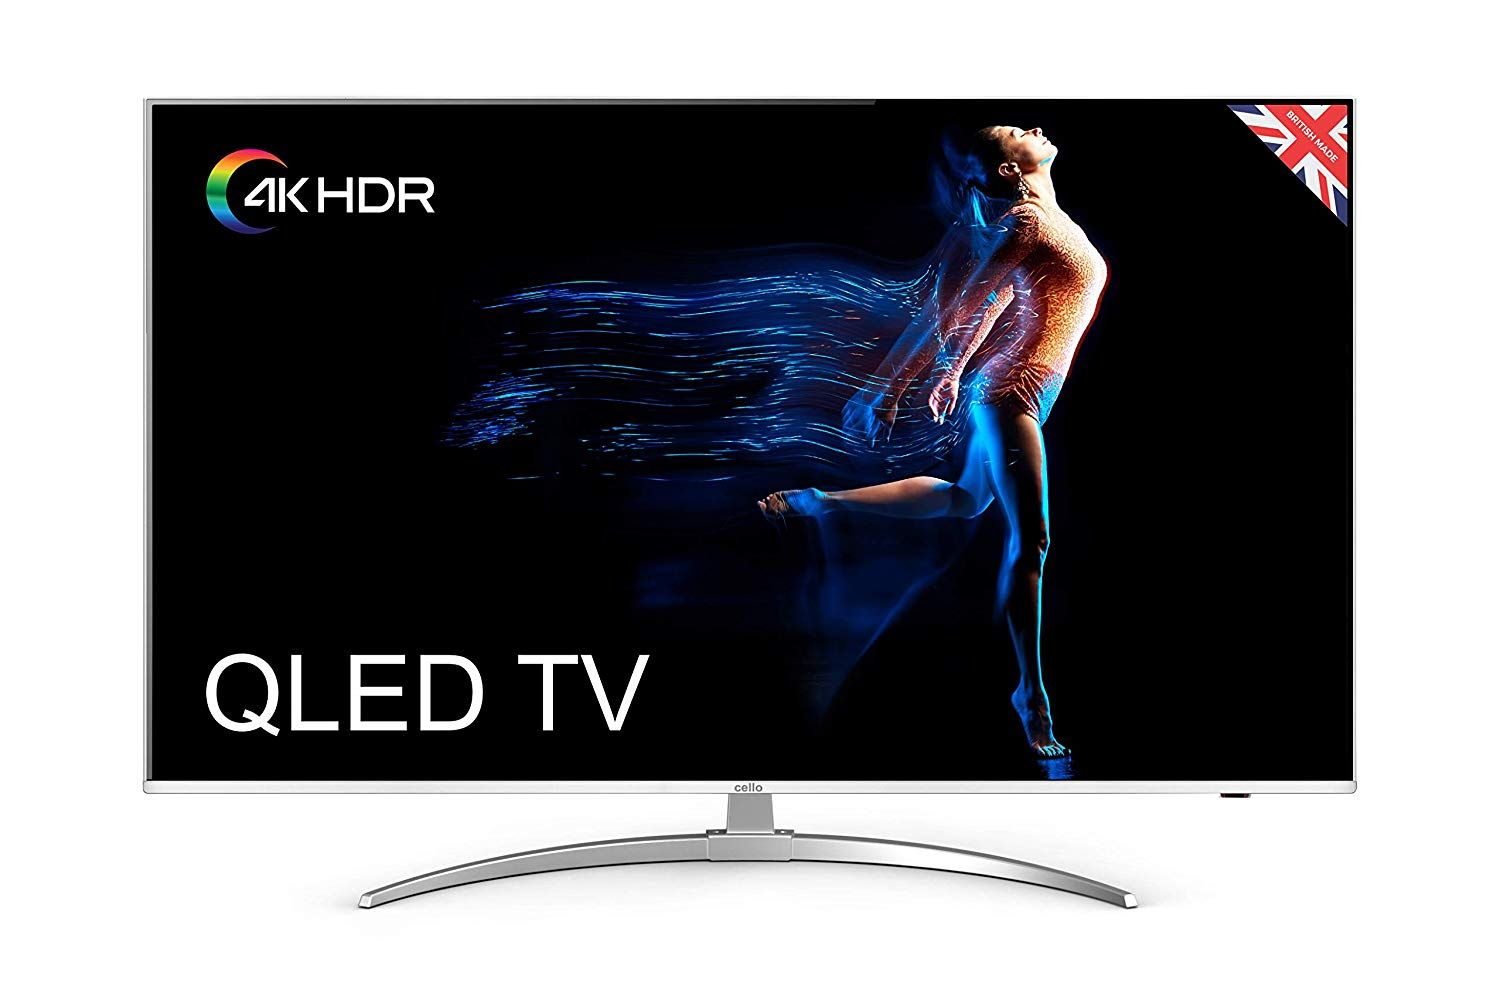 British Tv Company Cello Launches 55 Inch 4k Ultra Hdr10 Qled Tv